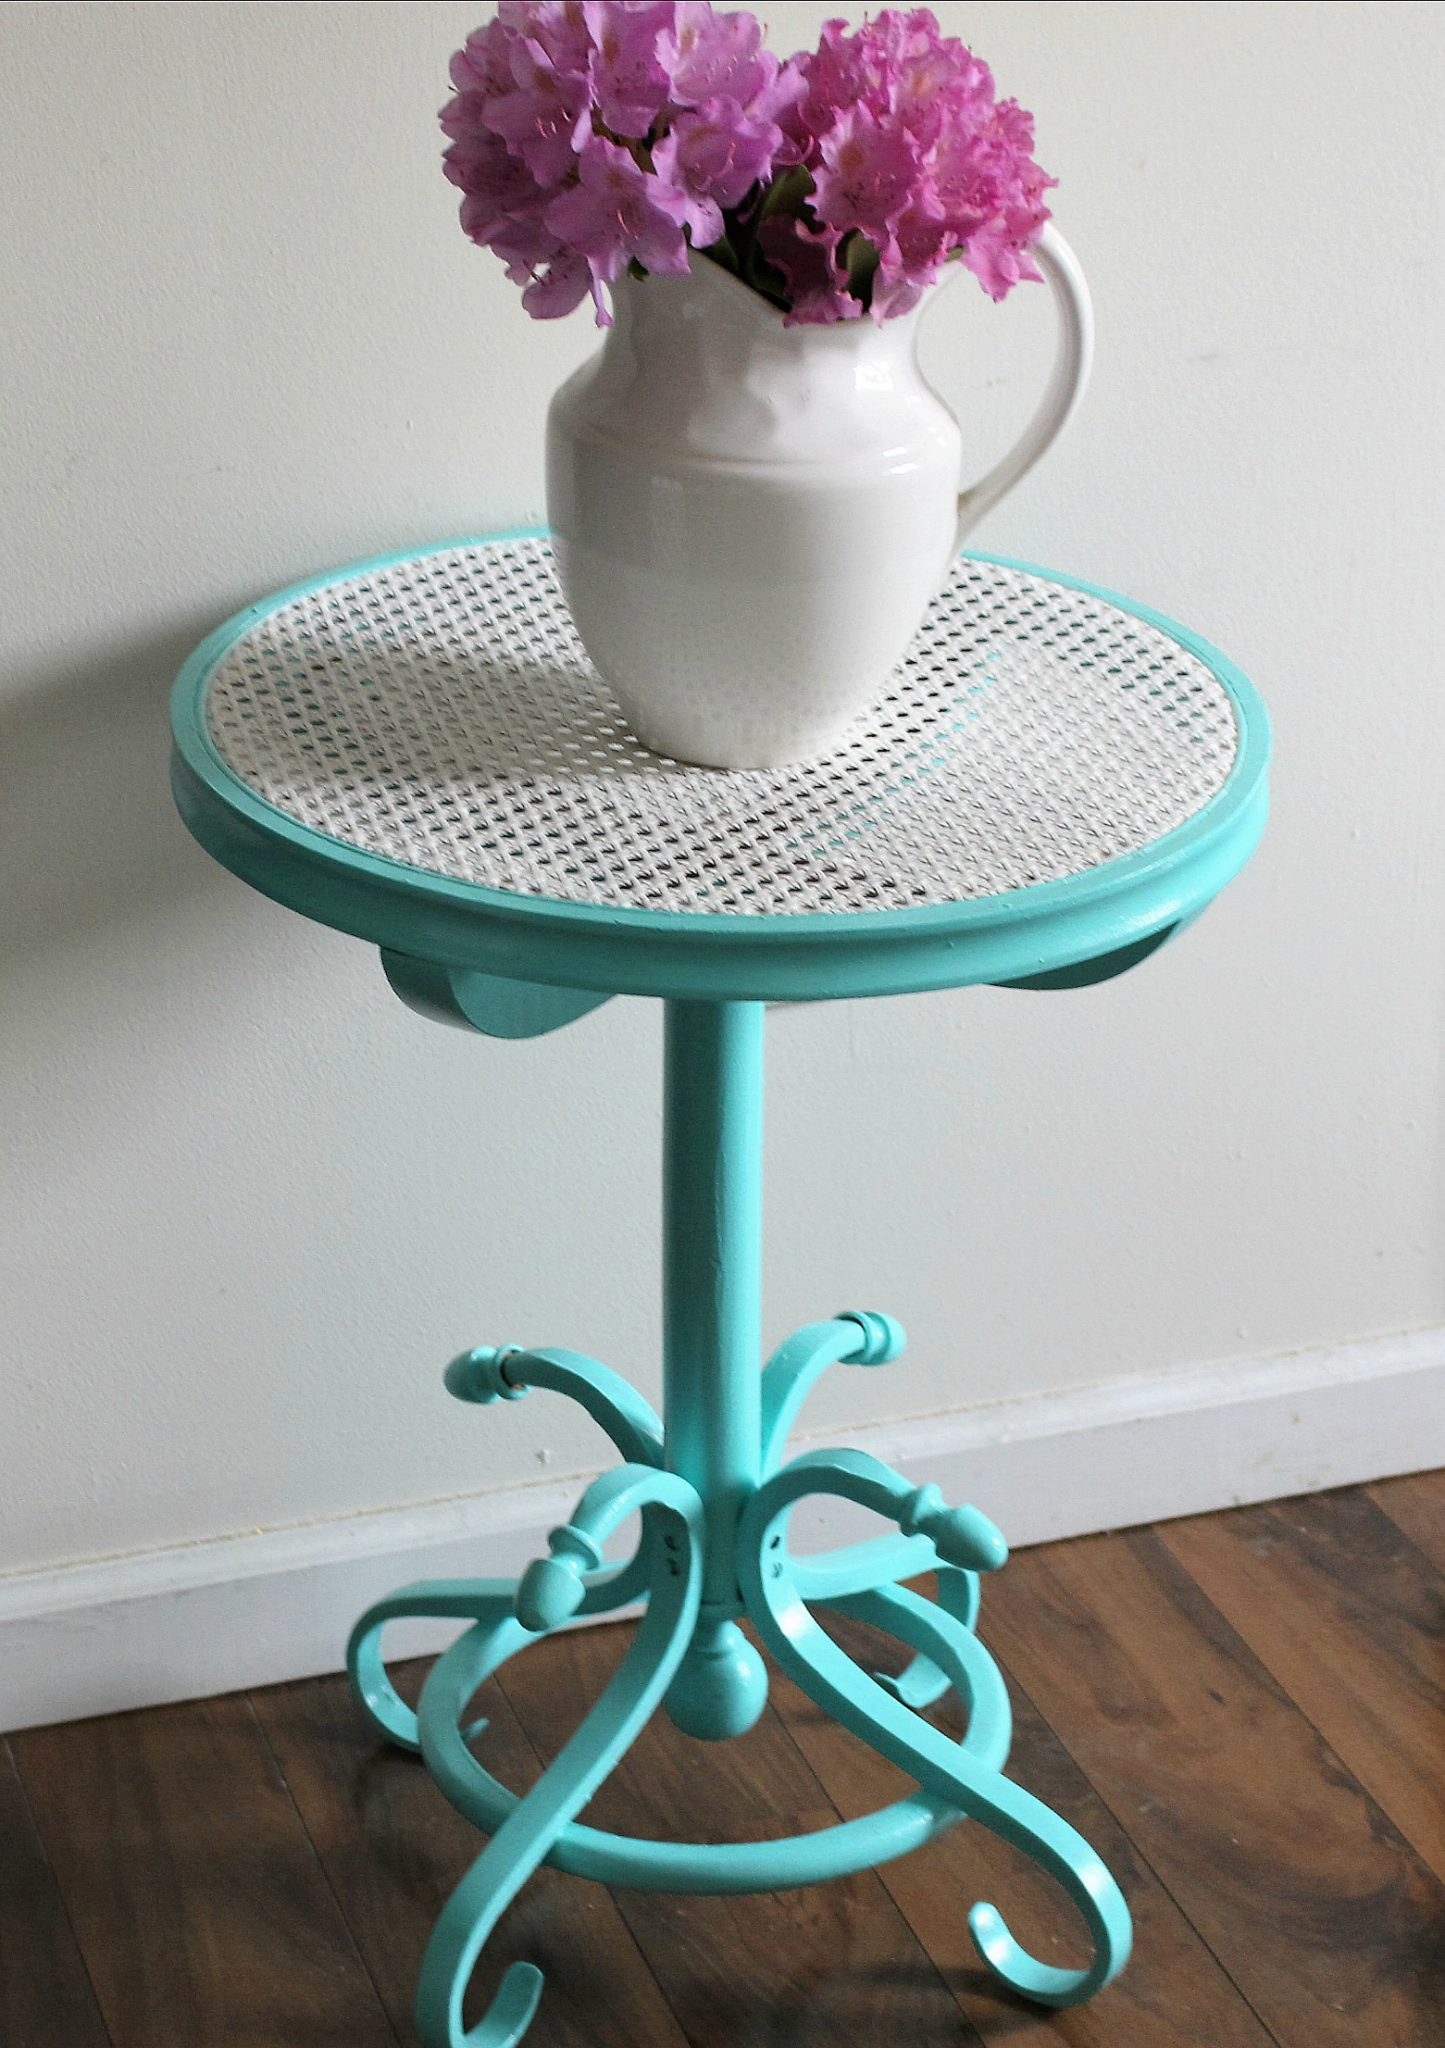 Thrift Store Cane Top Table Makeover Our Crafty Mom 5